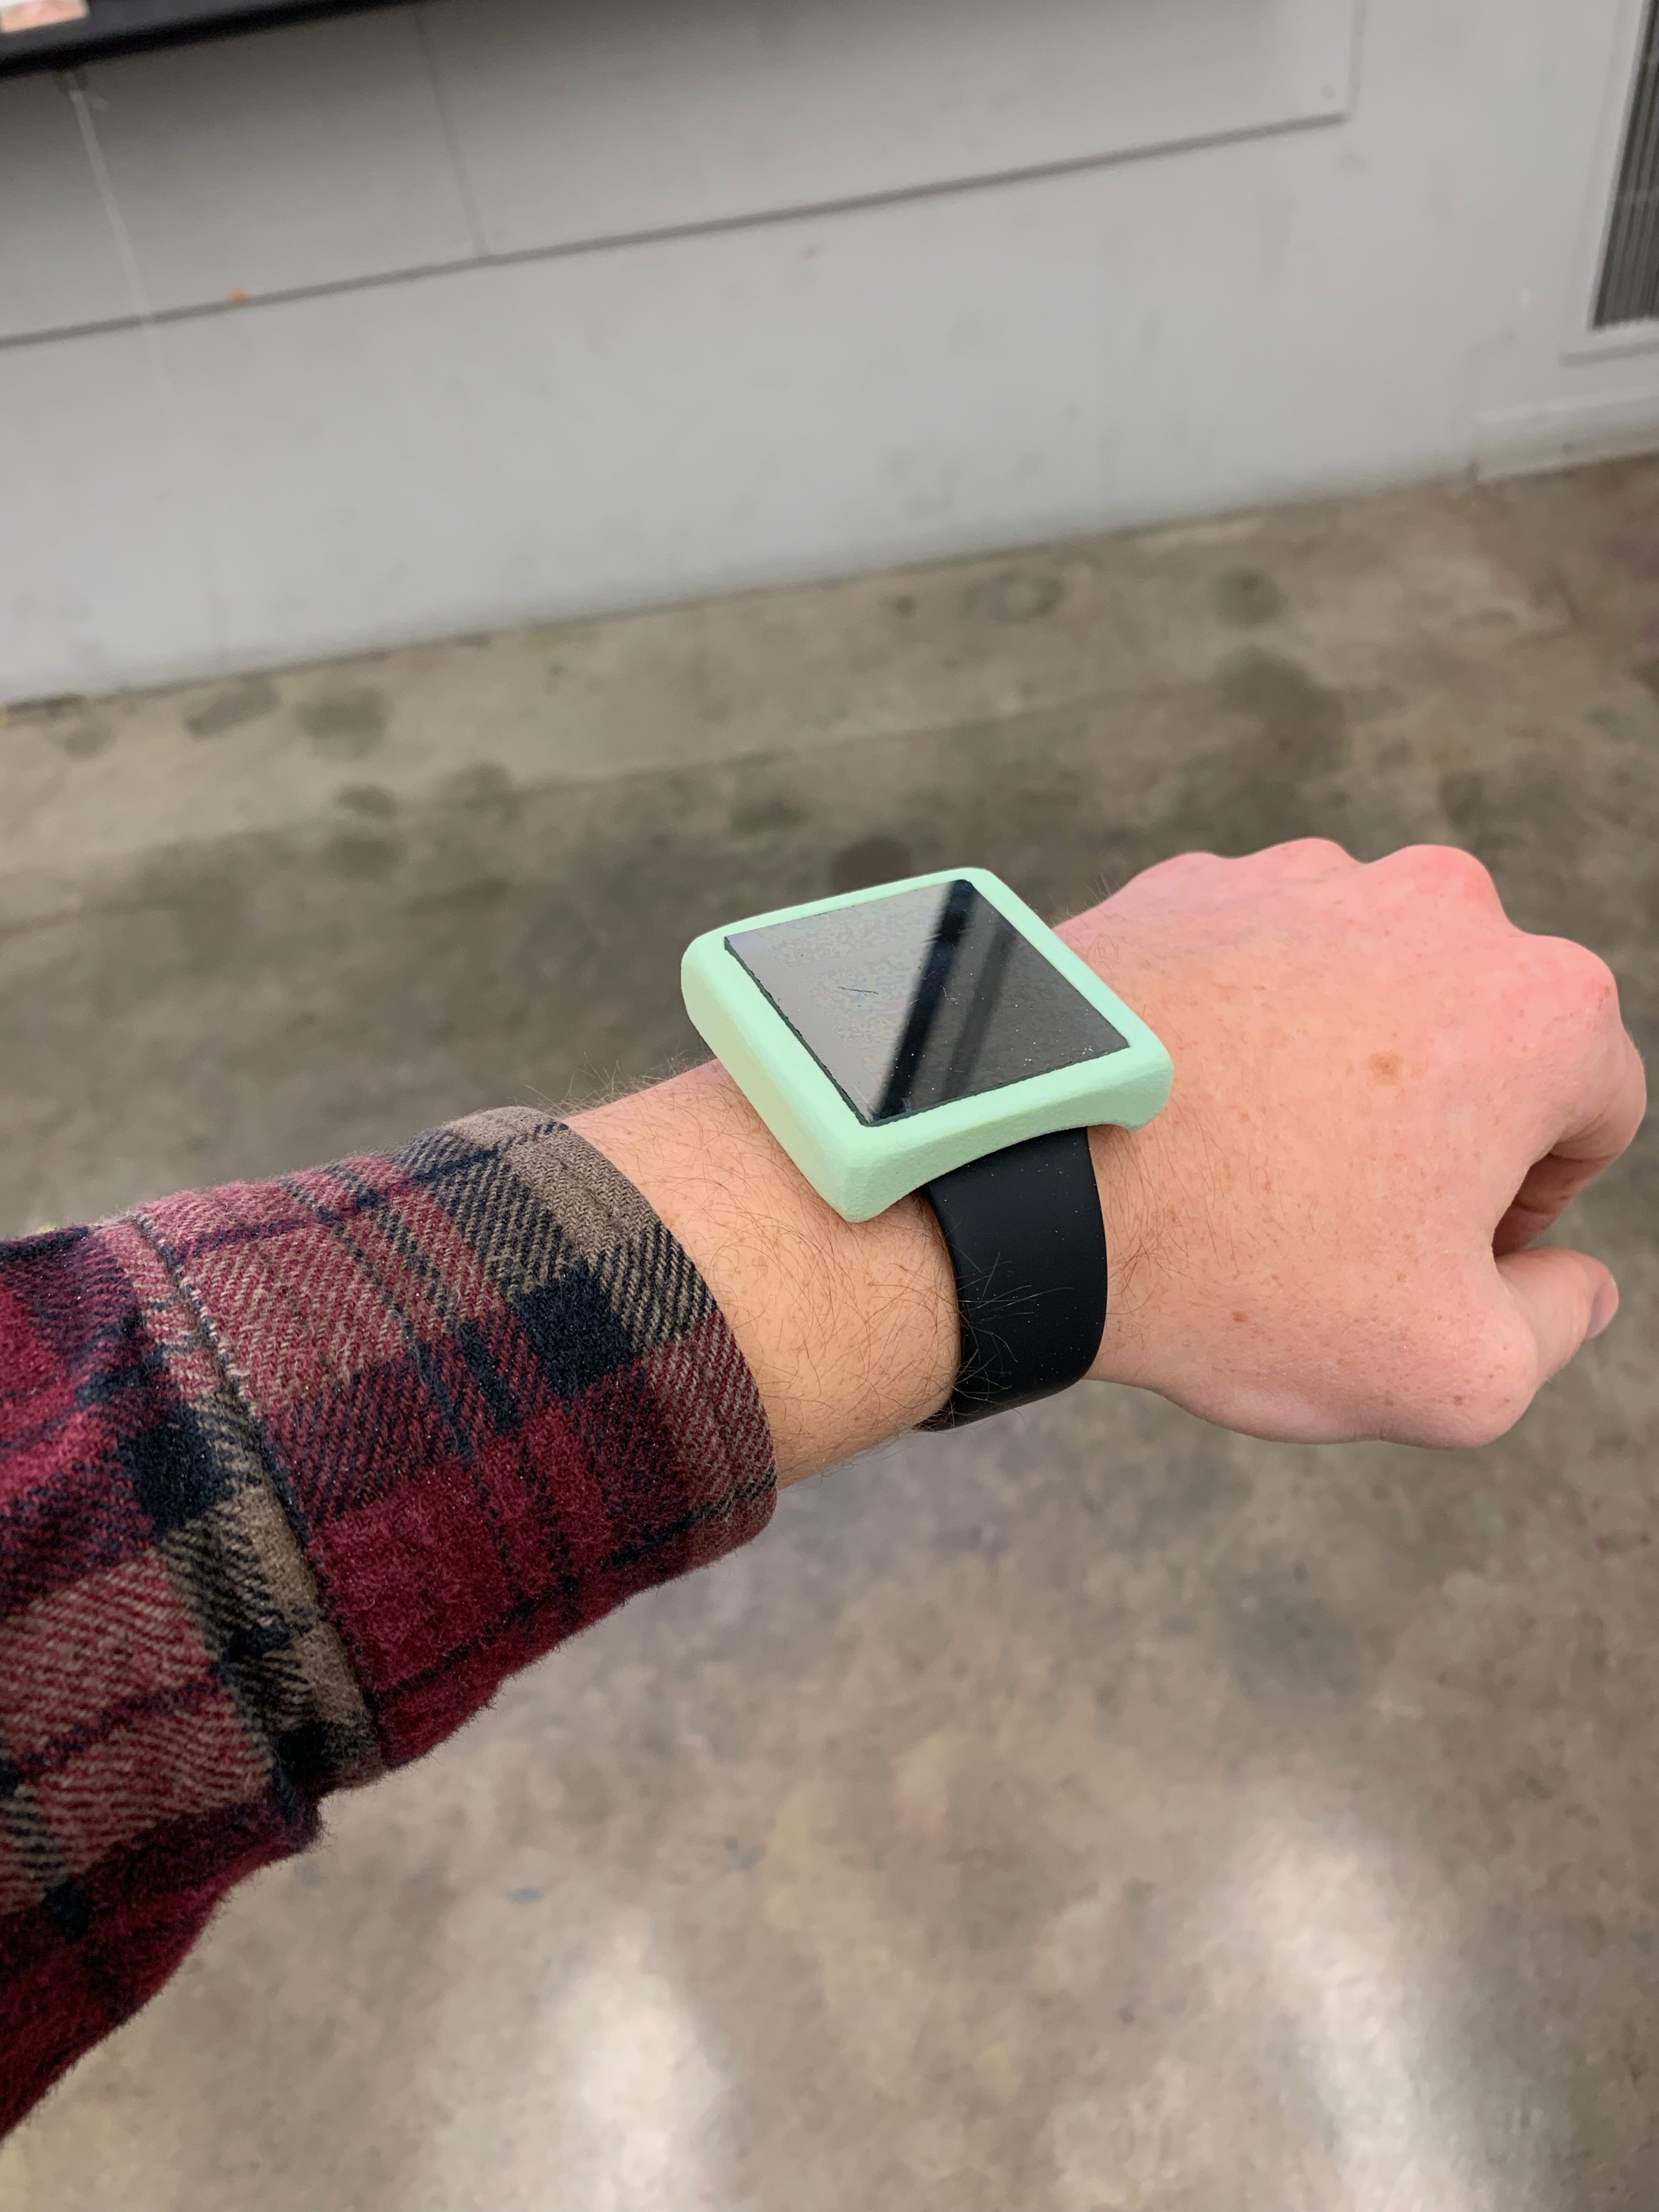 The final high-fidelity wizard-of-oz prototype. A foam casing and plastic two-way mirror on top of an Apple Watch.